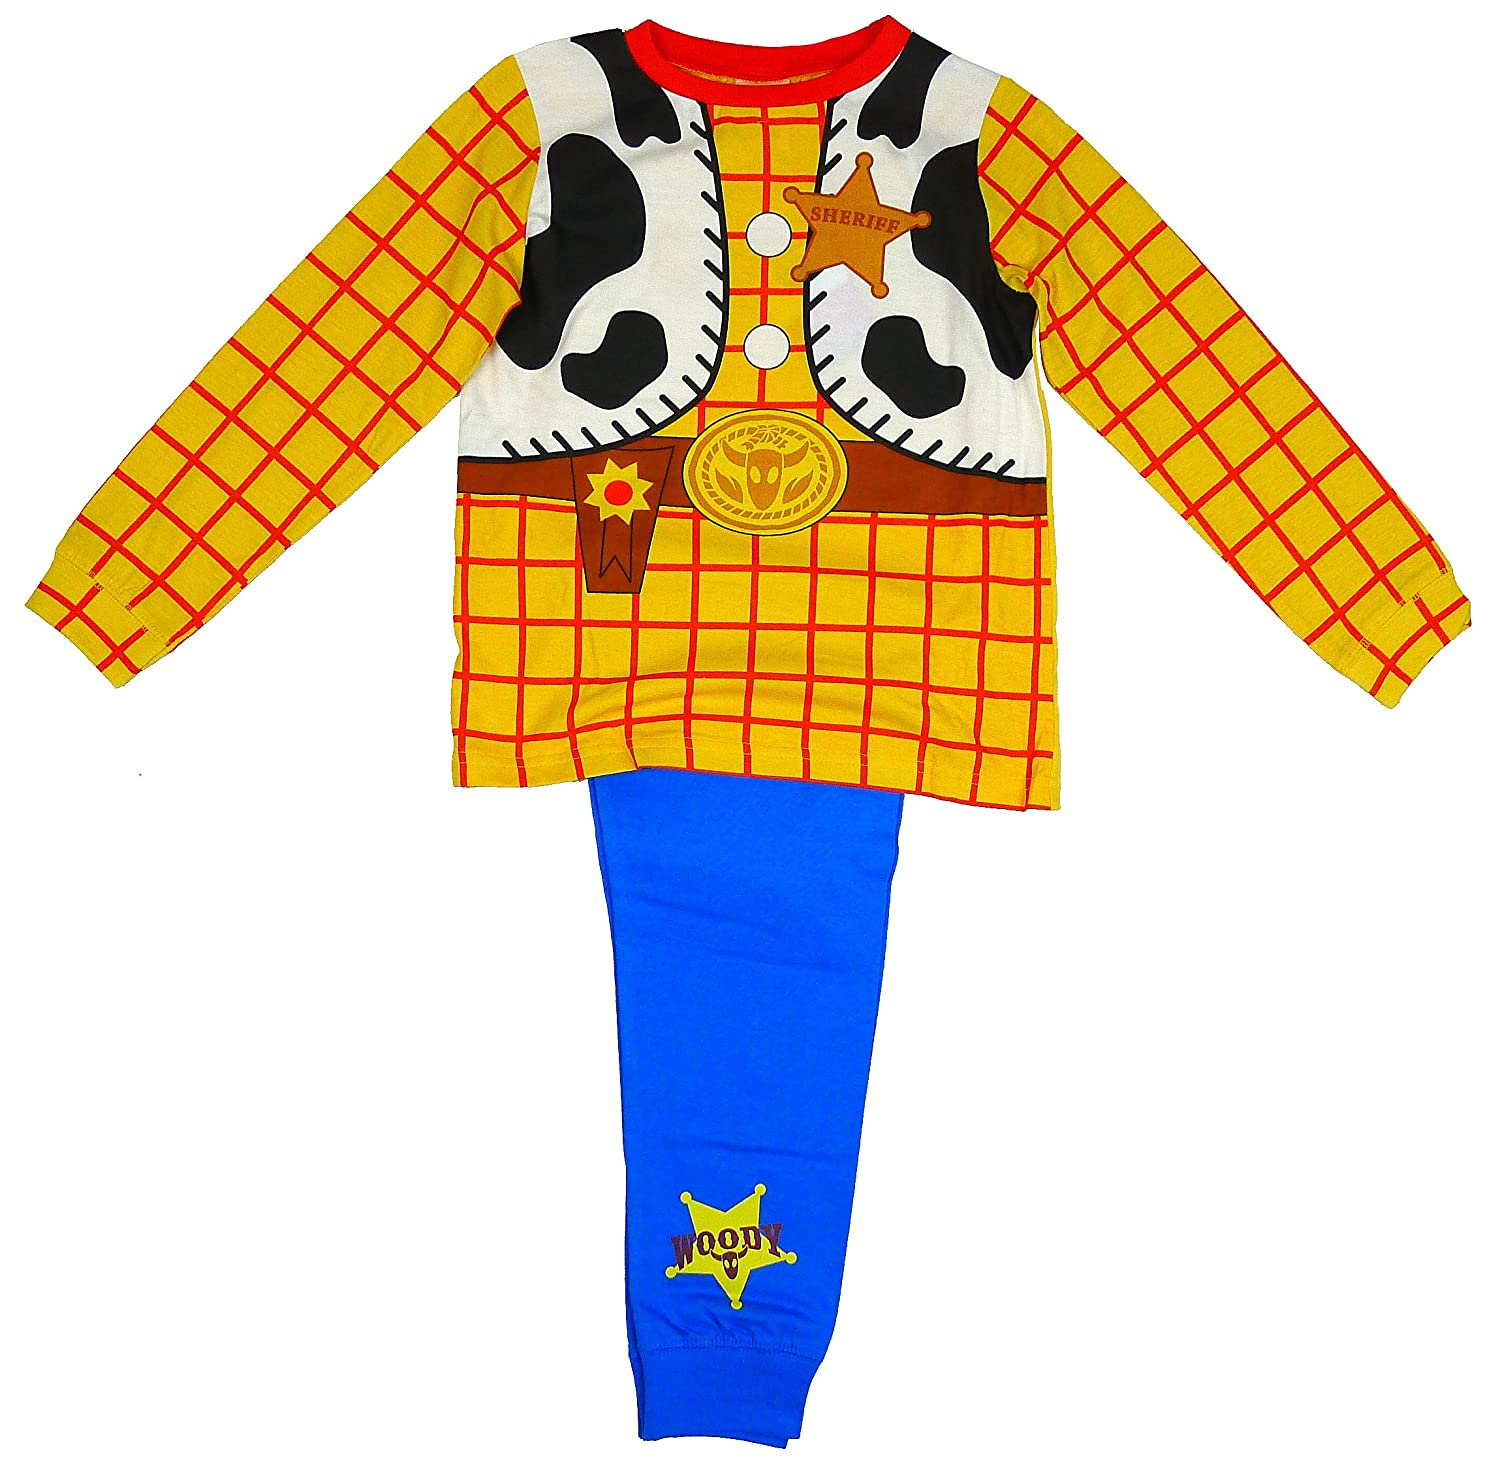 910c9507a1 Boys Toy Story Woody Cowboy Costume Novelty Pyjamas Sizes from 18 Months to  6 Years  Amazon.co.uk  Toys   Games